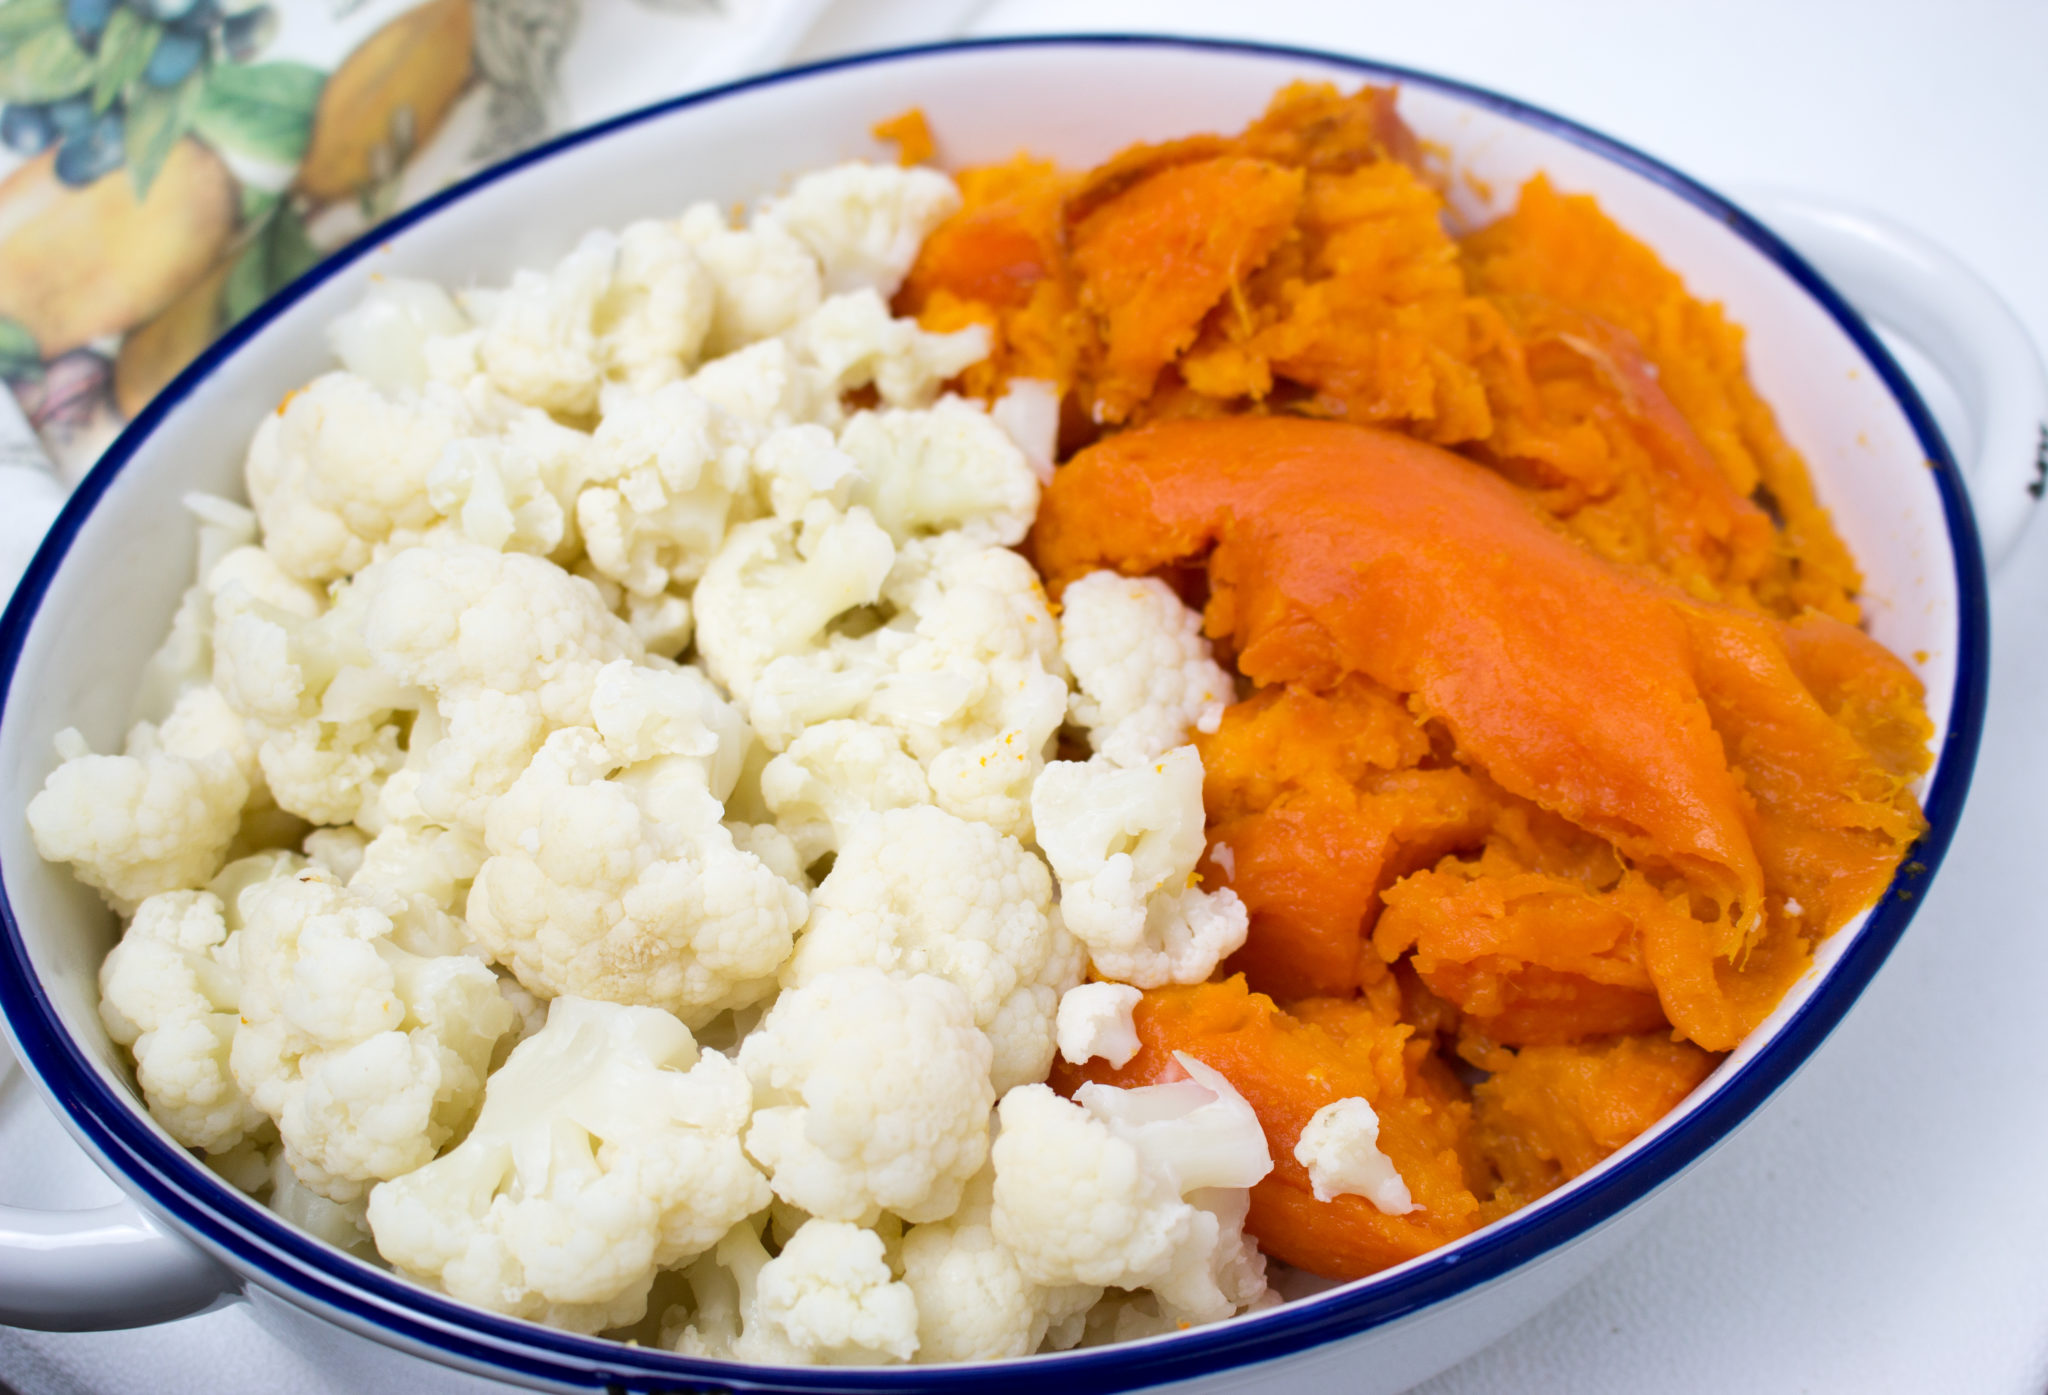 Sweet potatoes and cauliflower combined to create an amazingly smooth and savory side mashed potato recipe. No more marshmallows or added sweet flavorings. Roasting the sweet potatoes produces all the sweetness needed to make this side dish memorable. veganglutenfreelife.com/sweet-potato-cauliflower-mash/